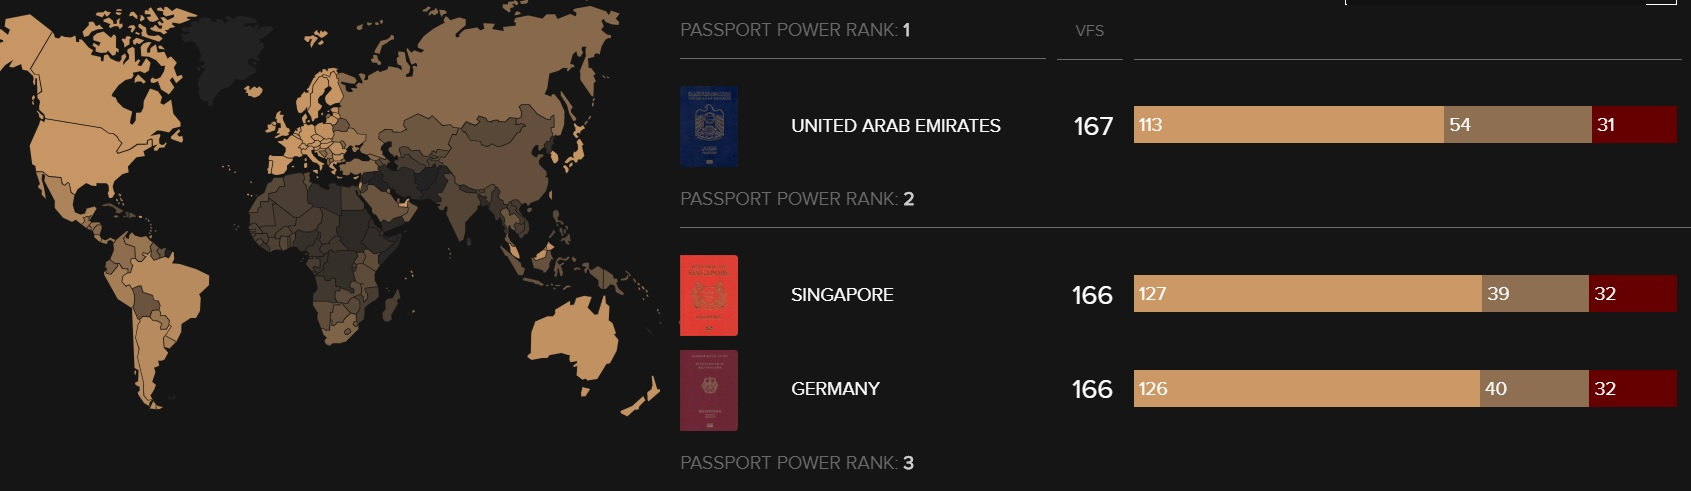 The Most Powerful Passports in the World 2018